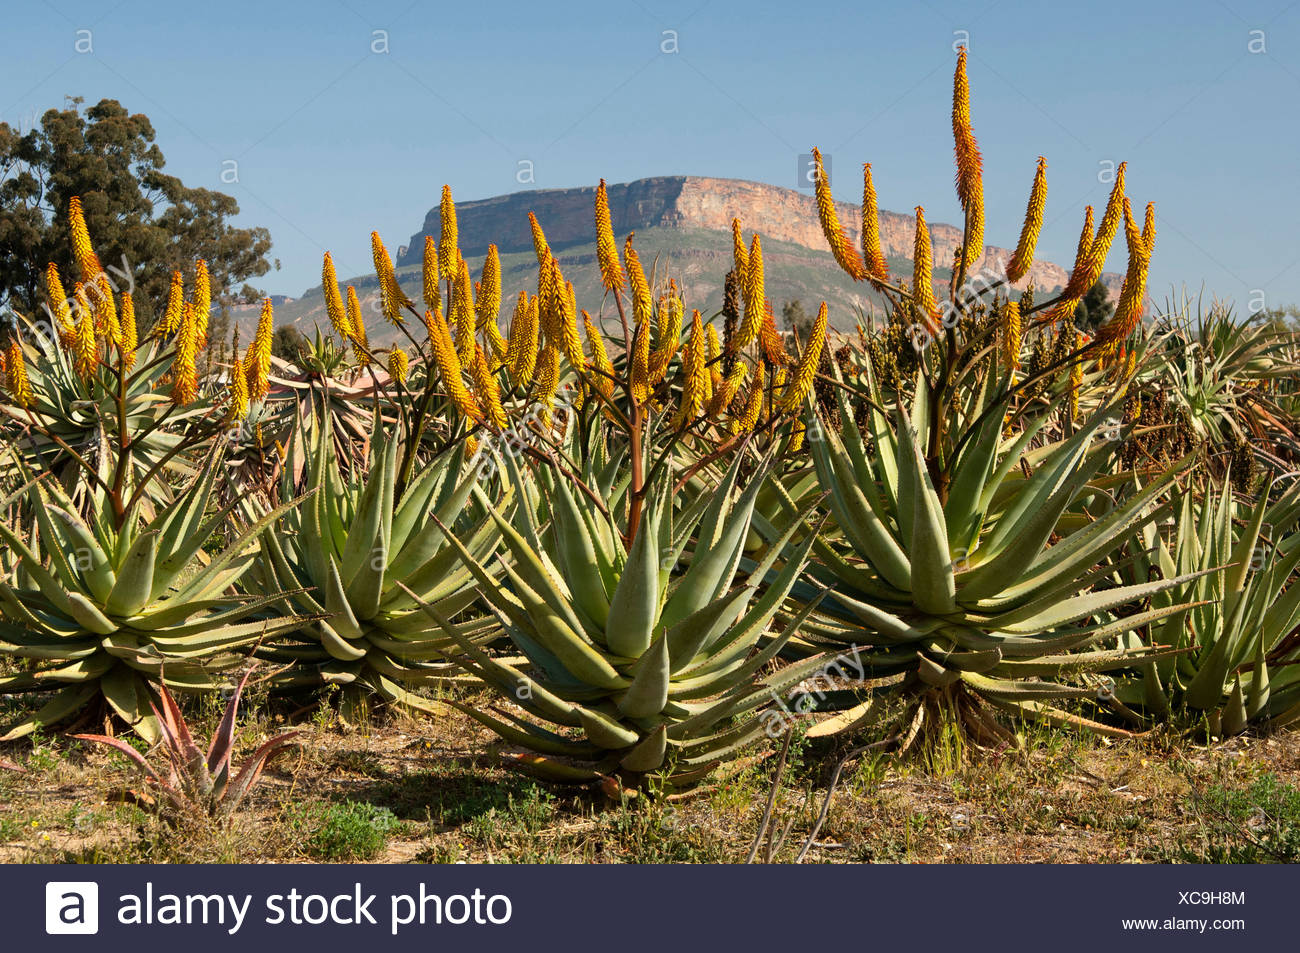 Cape Aloe (Aloe ferox) in front of Gifberg or Poison Mountain, Vanrhynsdorp, Western Cape Province, South Africa, Africa - Stock Image